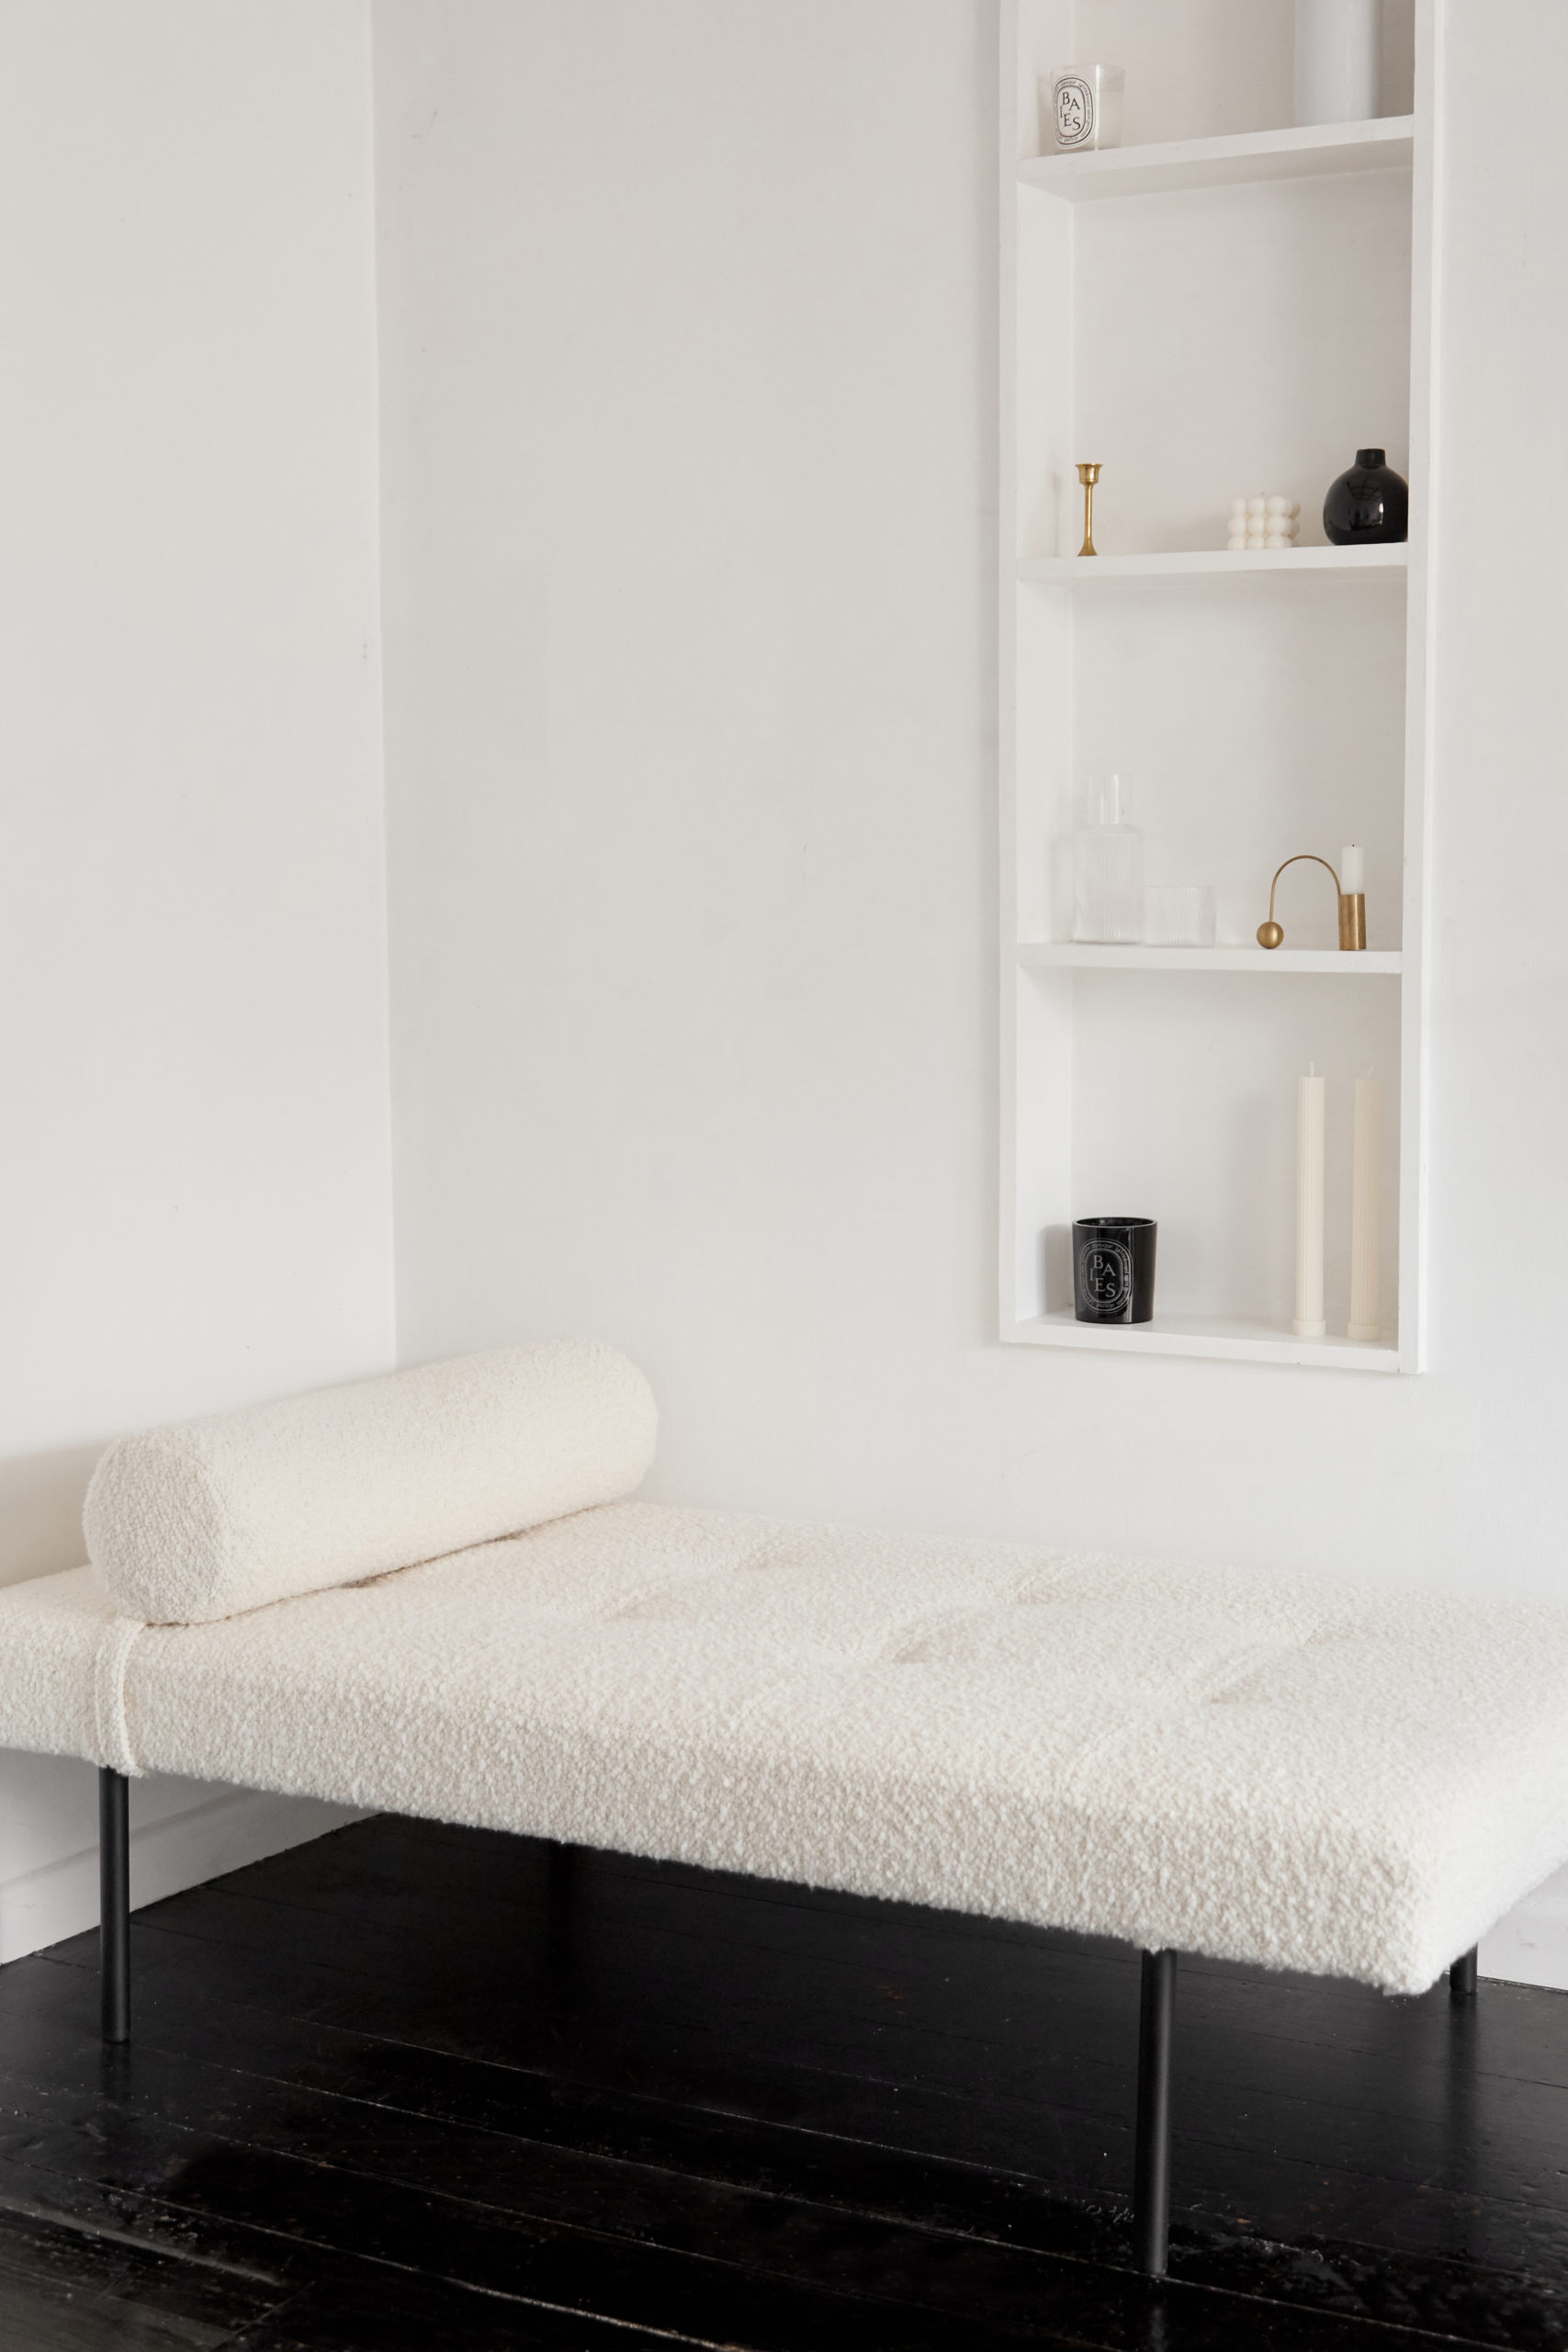 David Shaw | The Minimalist Emilee Daybed by Beck Wadworth x David Shaw